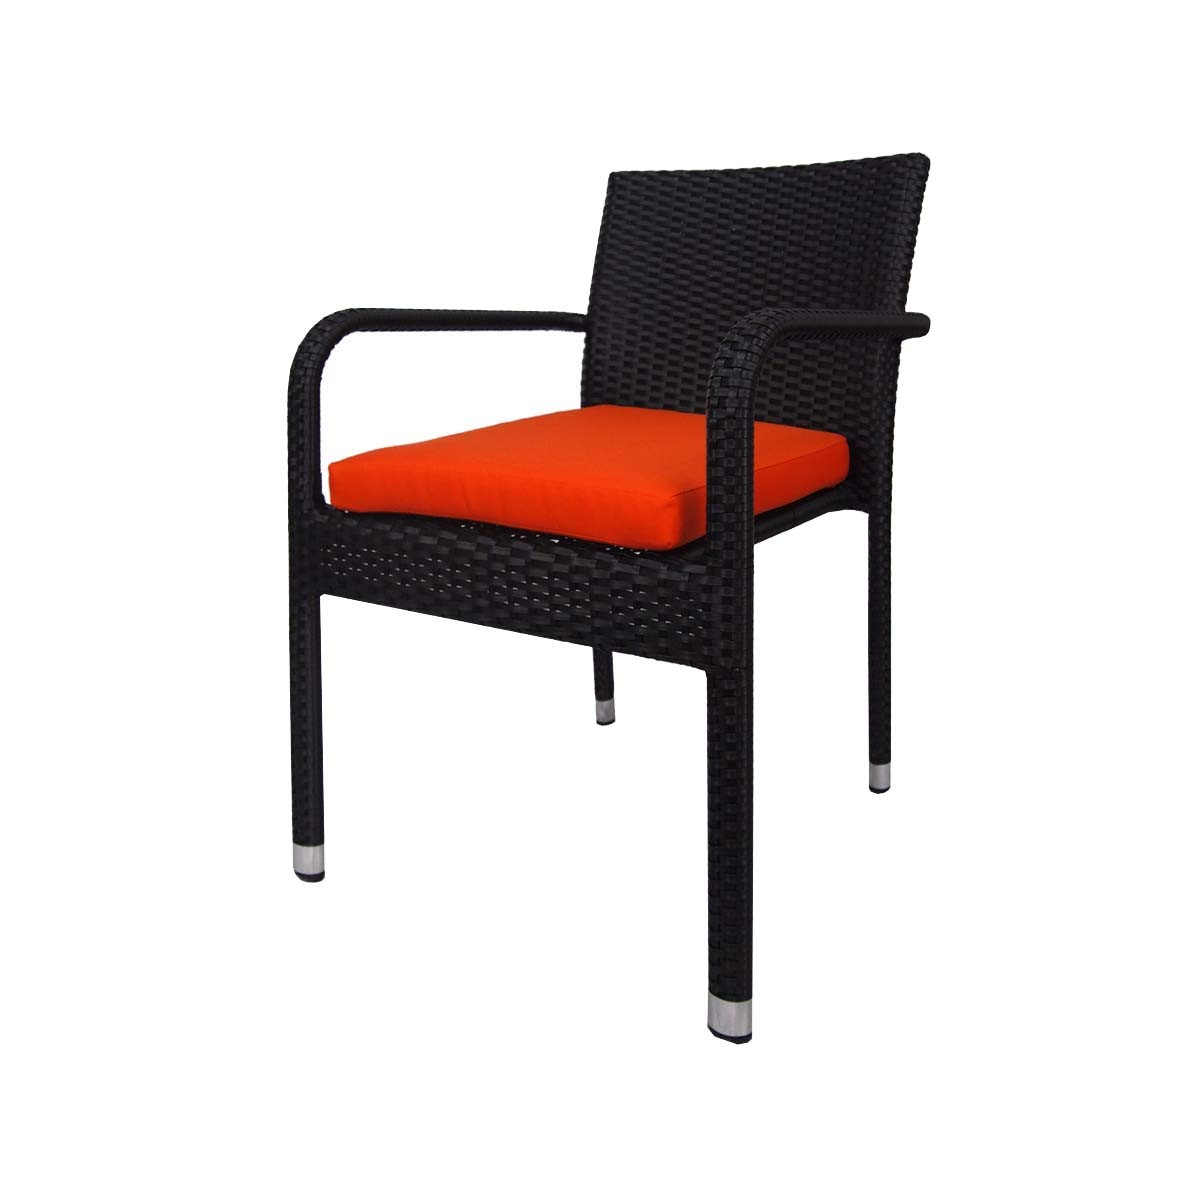 orange cafe chairs hanging chair no stand boulevard 4 dining cushion 2 year warranty